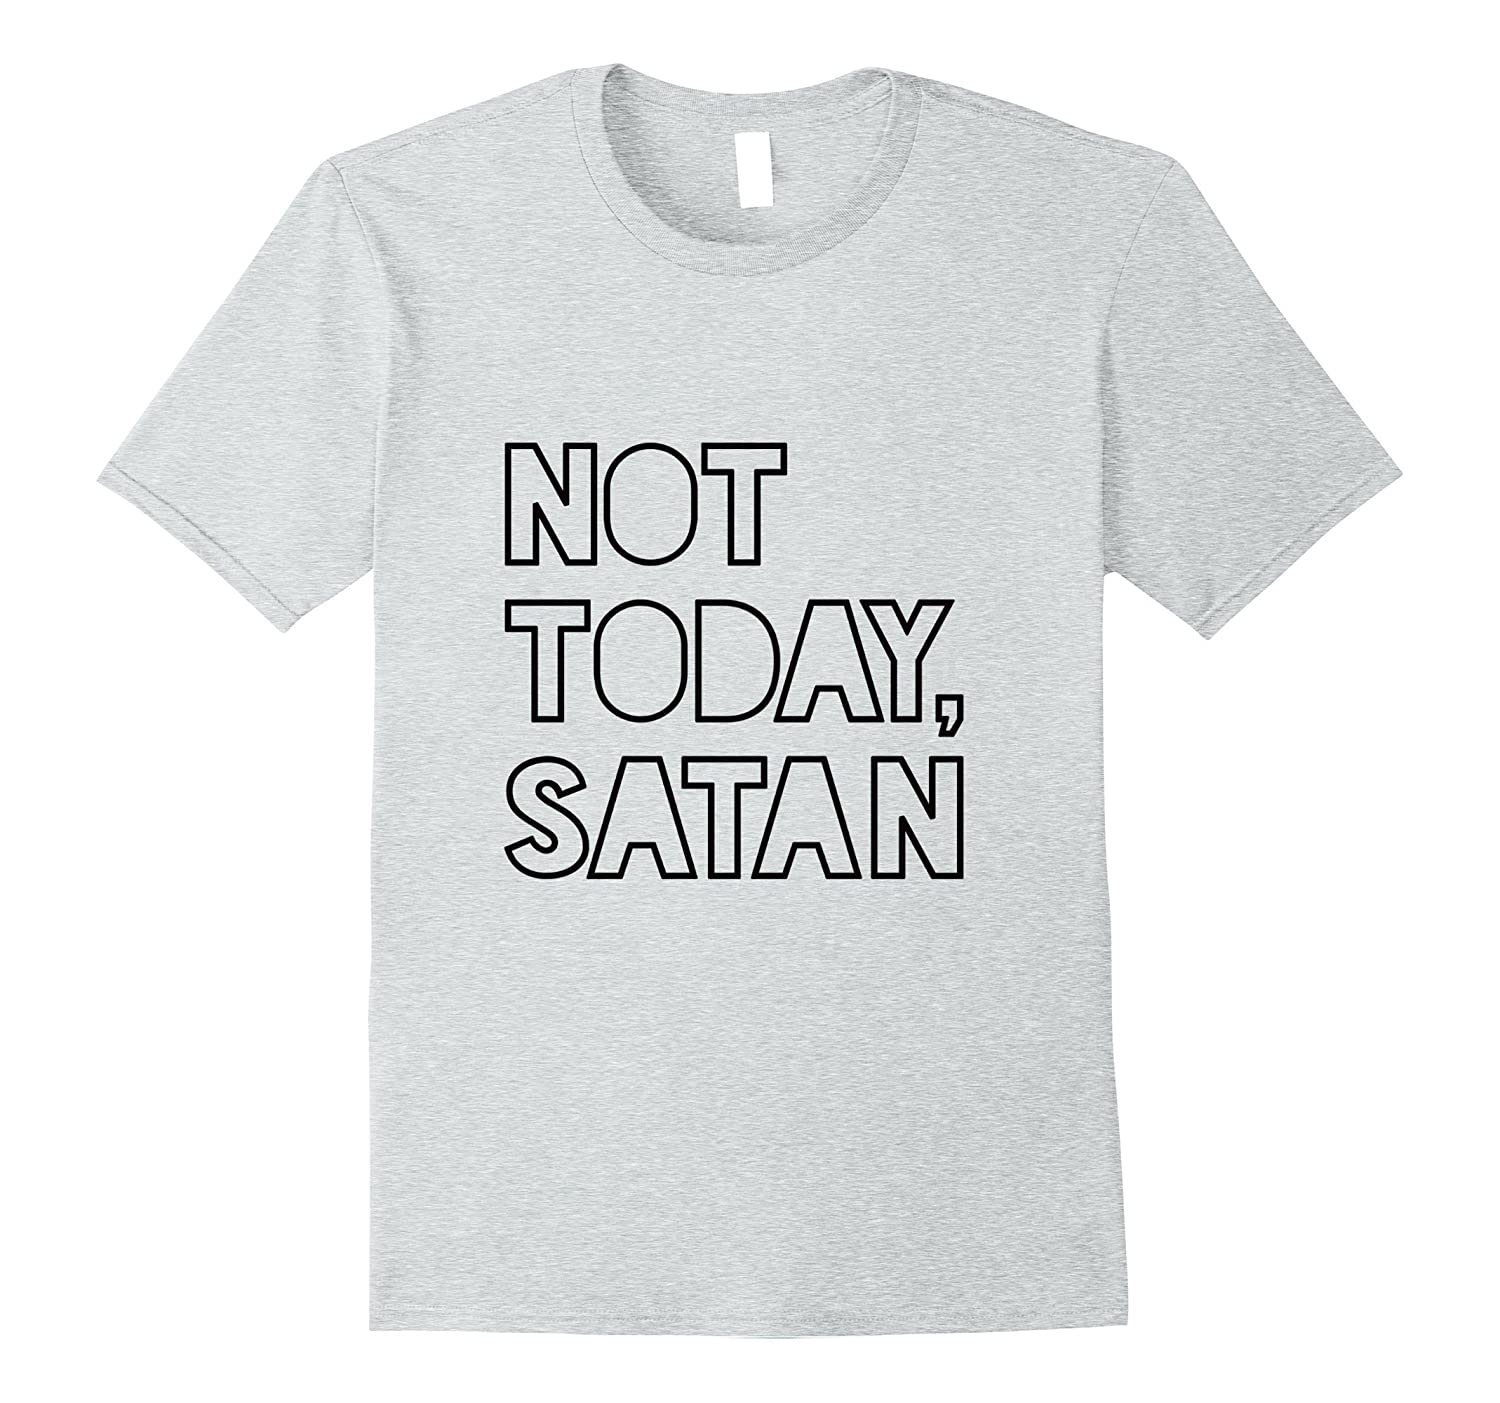 Not Today Satan - Get Thee Behind Me front  back-TD